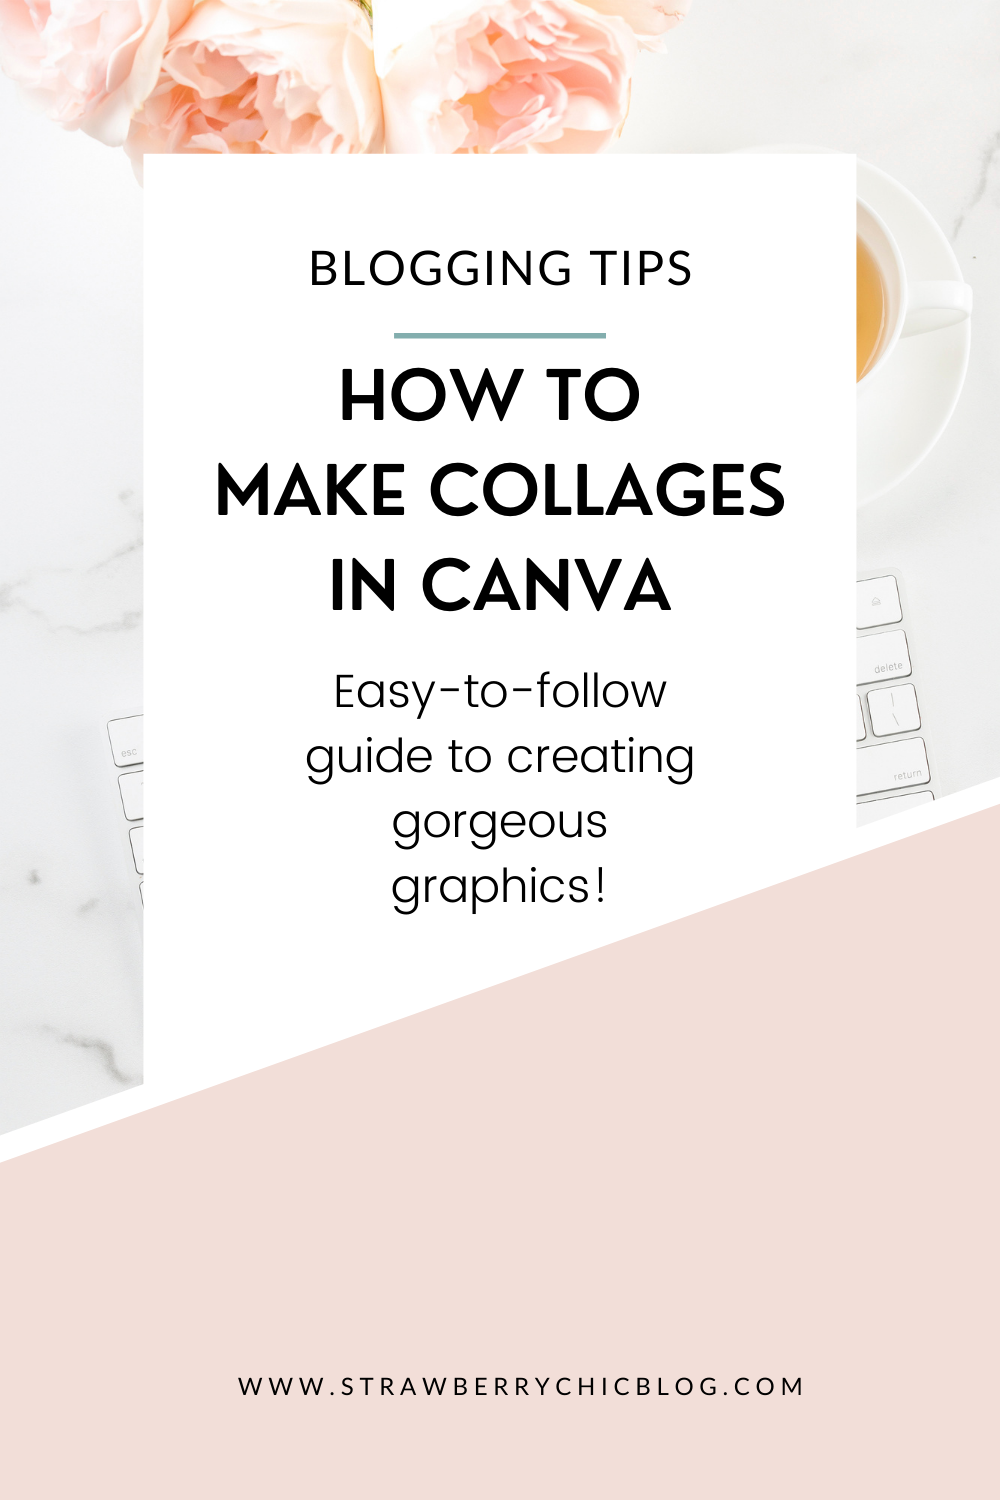 How To Make Collages in Canva Pinterest Graphic